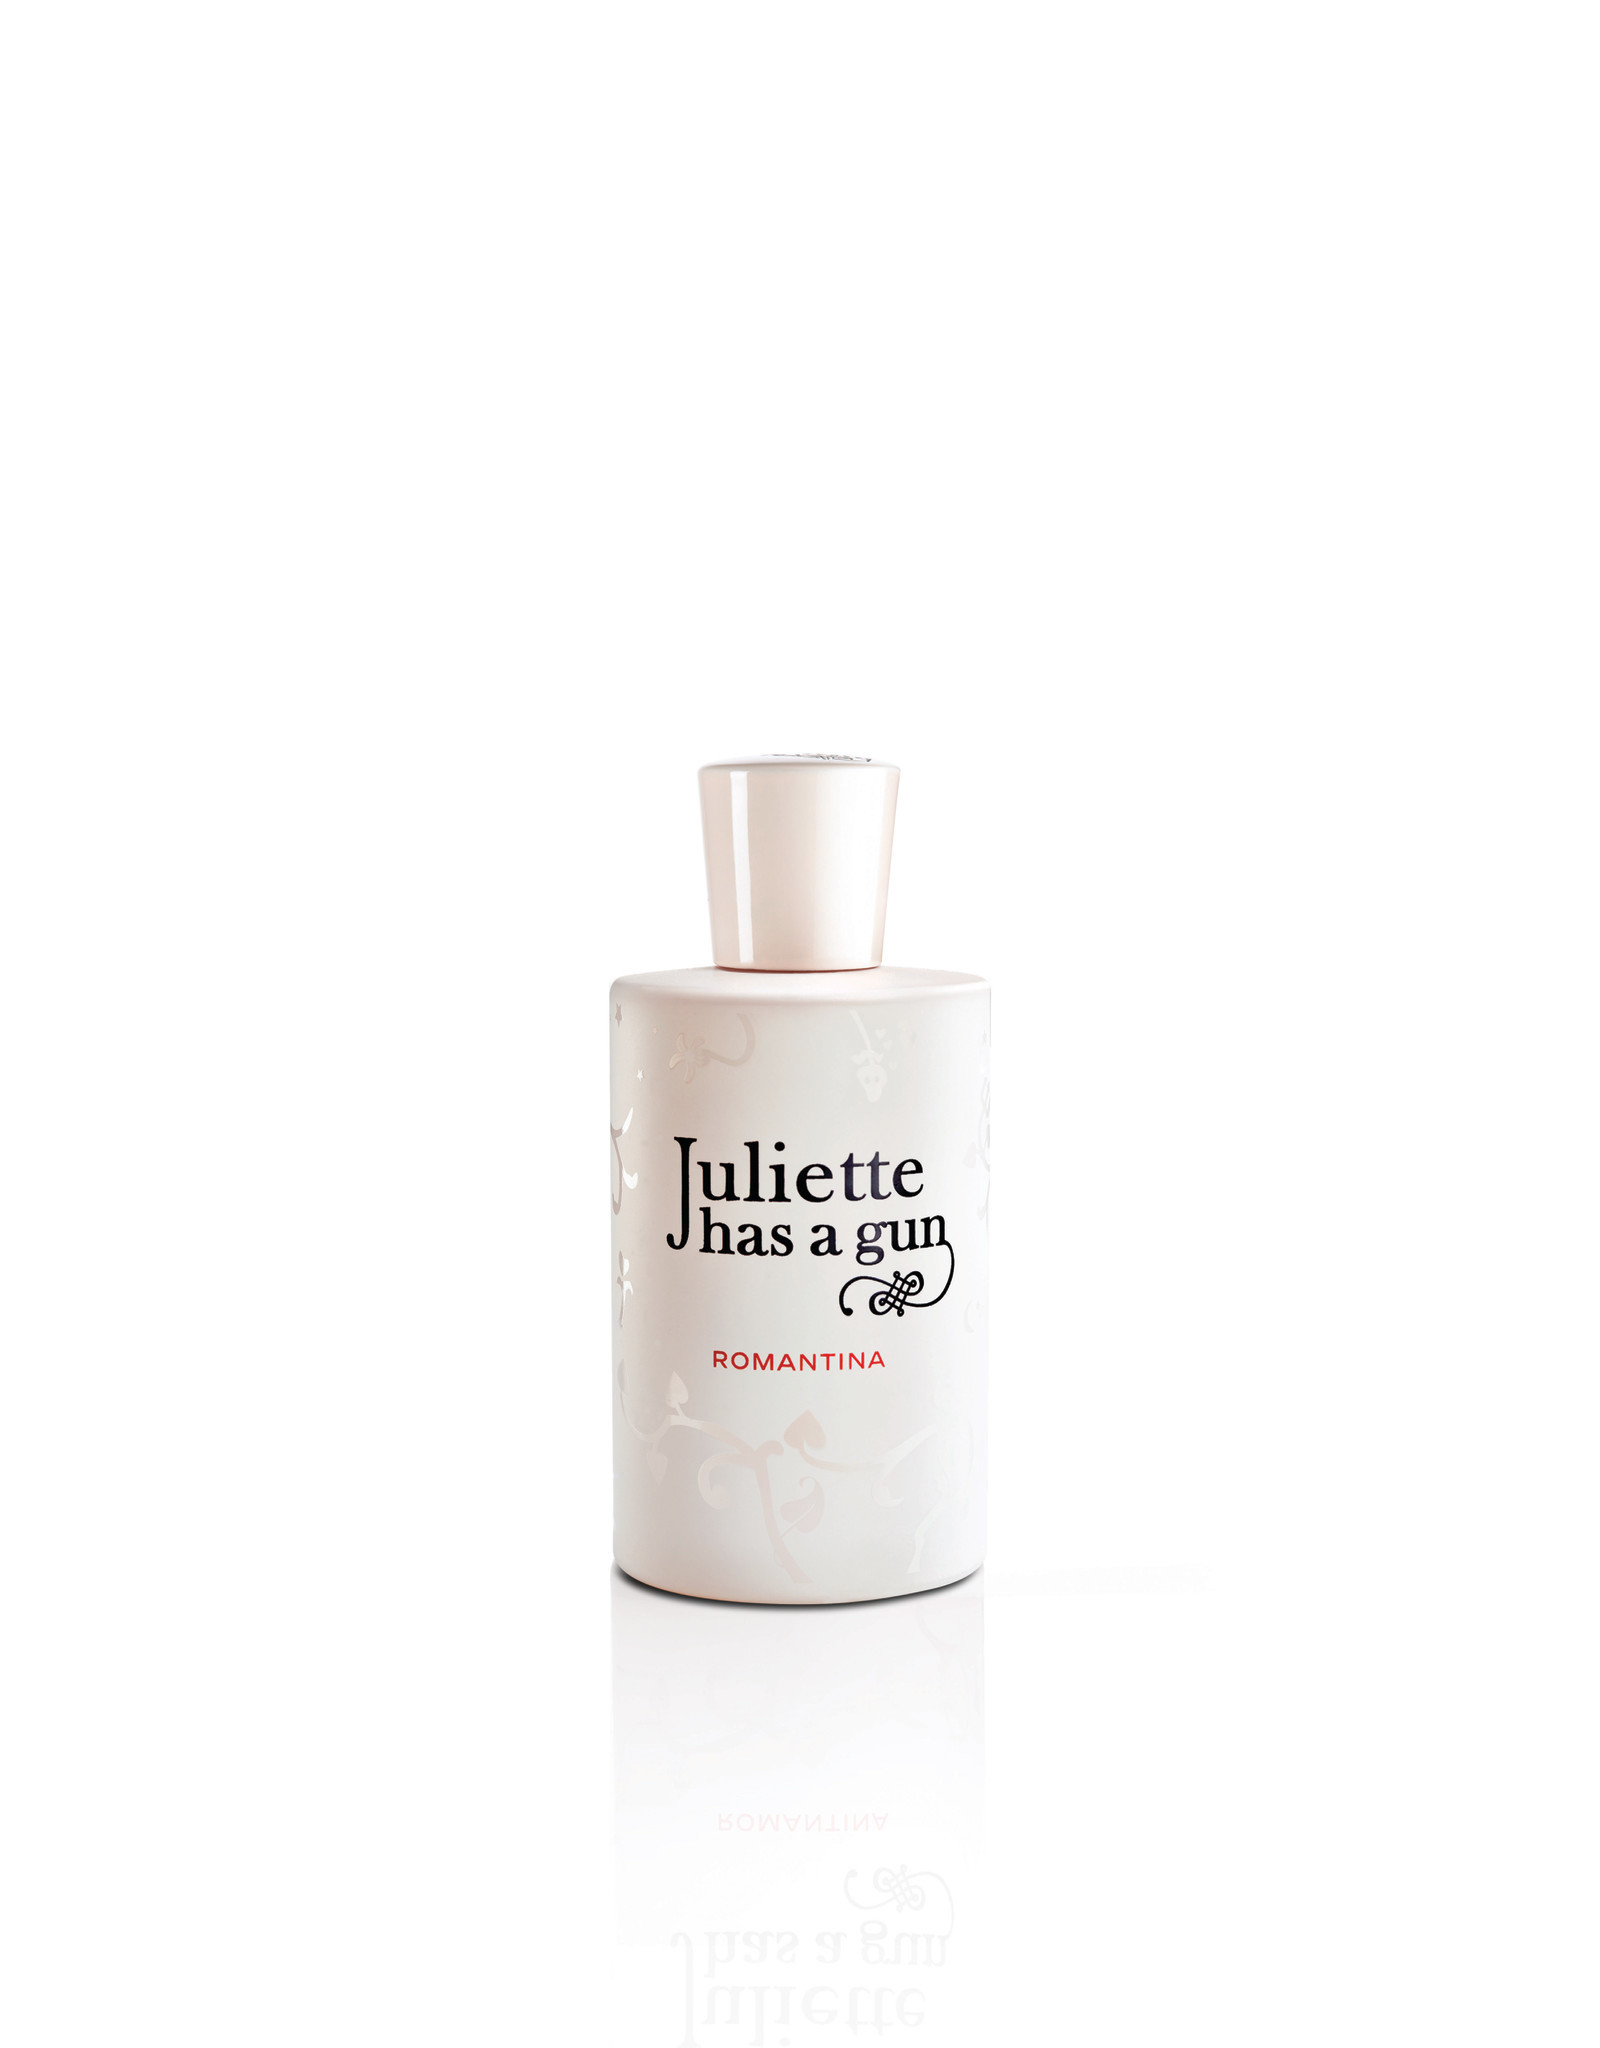 Juliette has a gun Juliette has a gun - Romantina 50ml